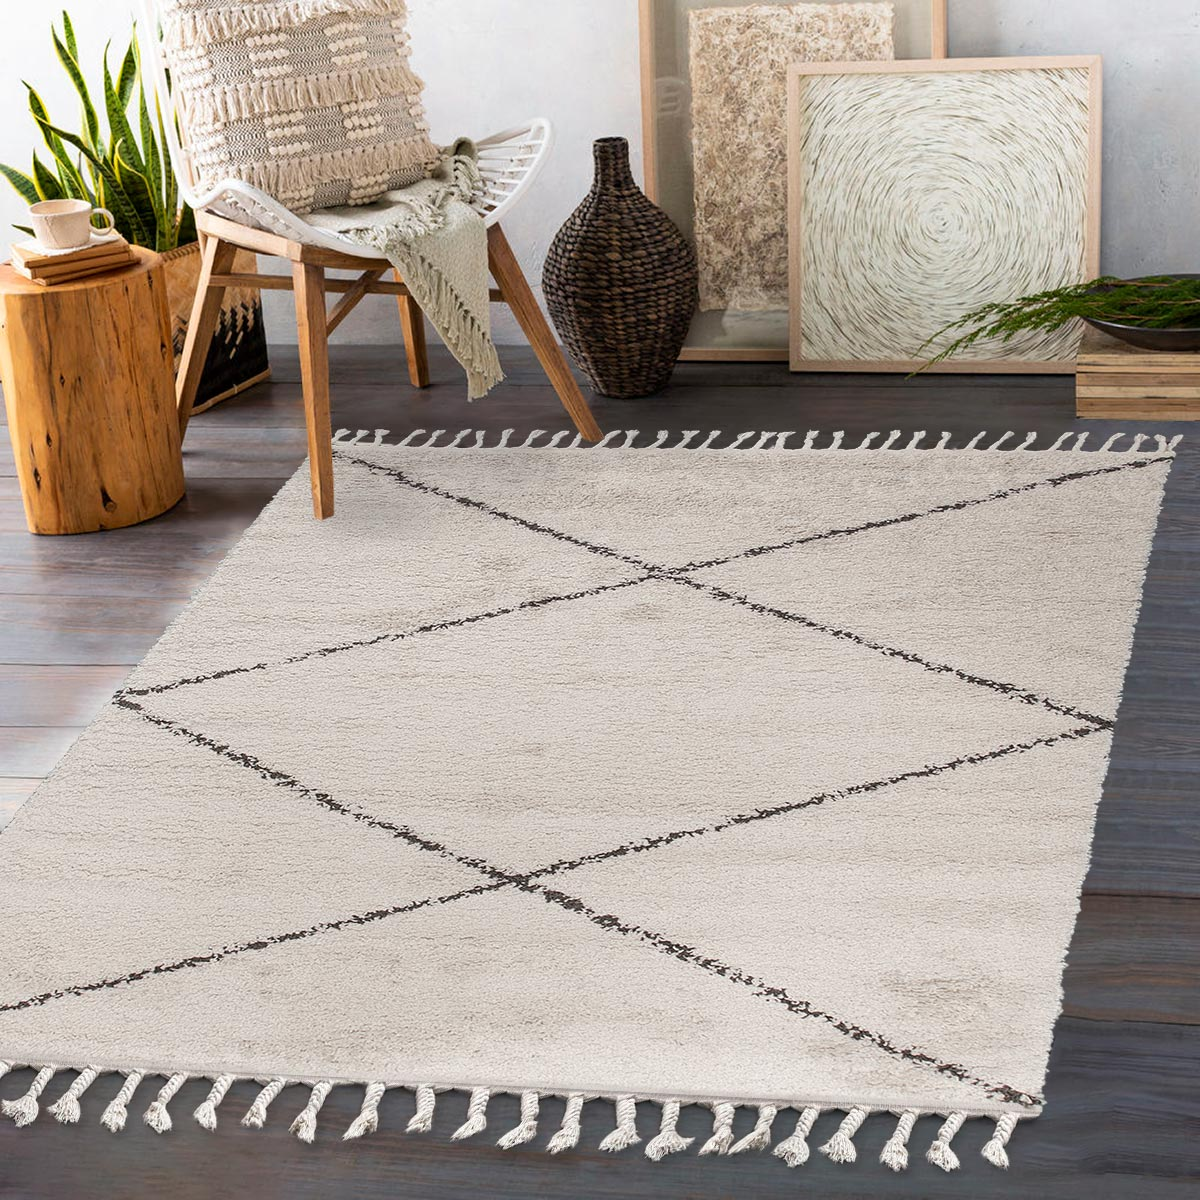 Shaggy Marrakech Rug 05 Cream/Black 3